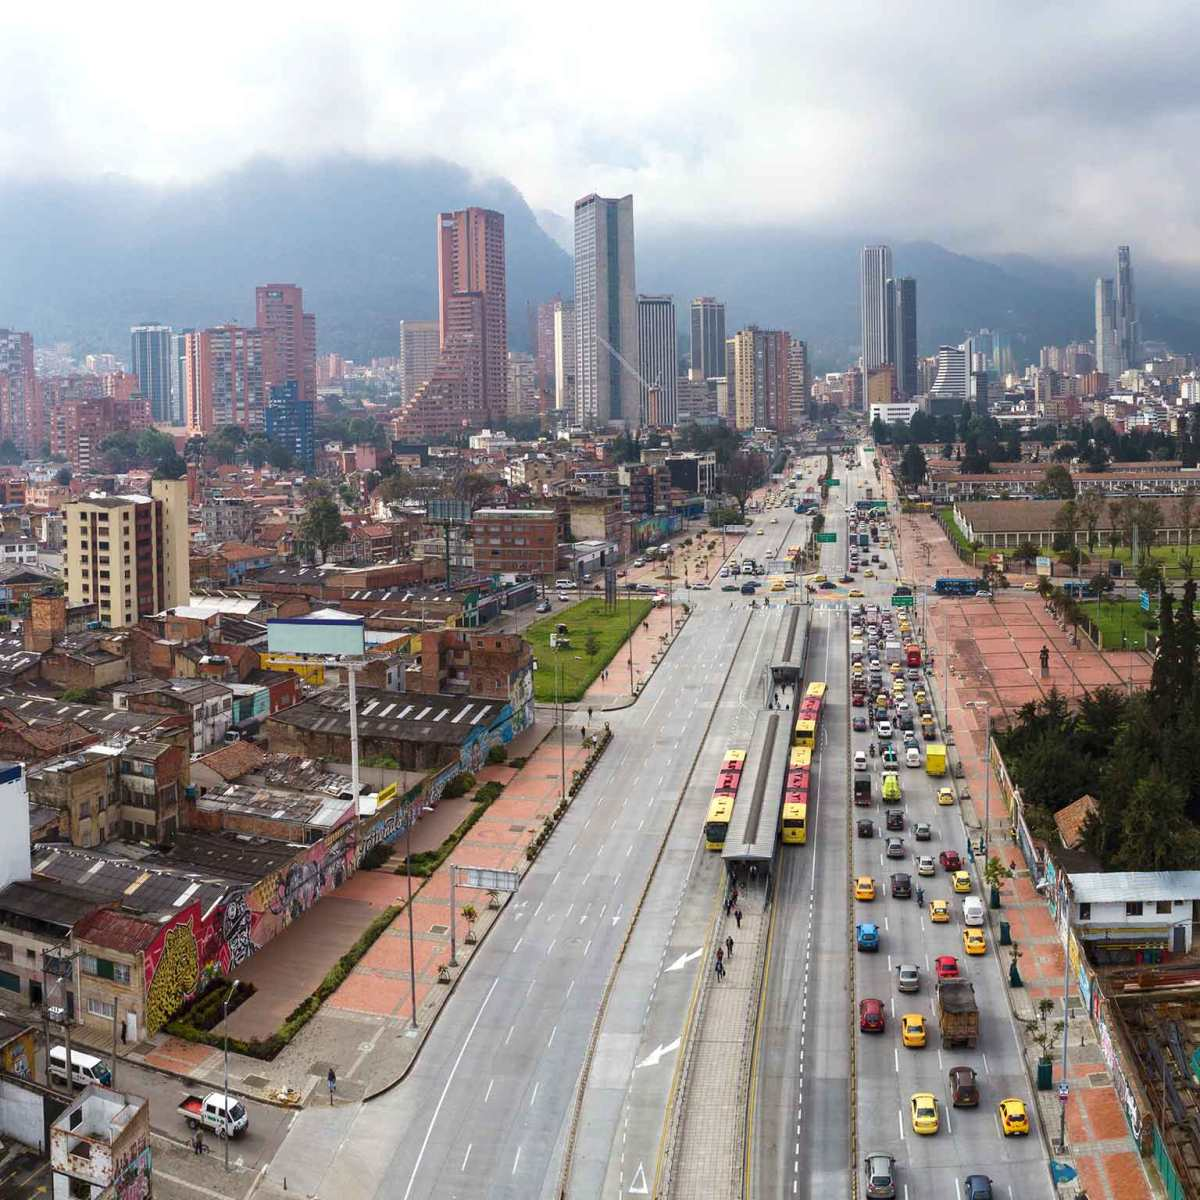 Colombia_Bogota_thumb_GettyImages769722707_1536x1536